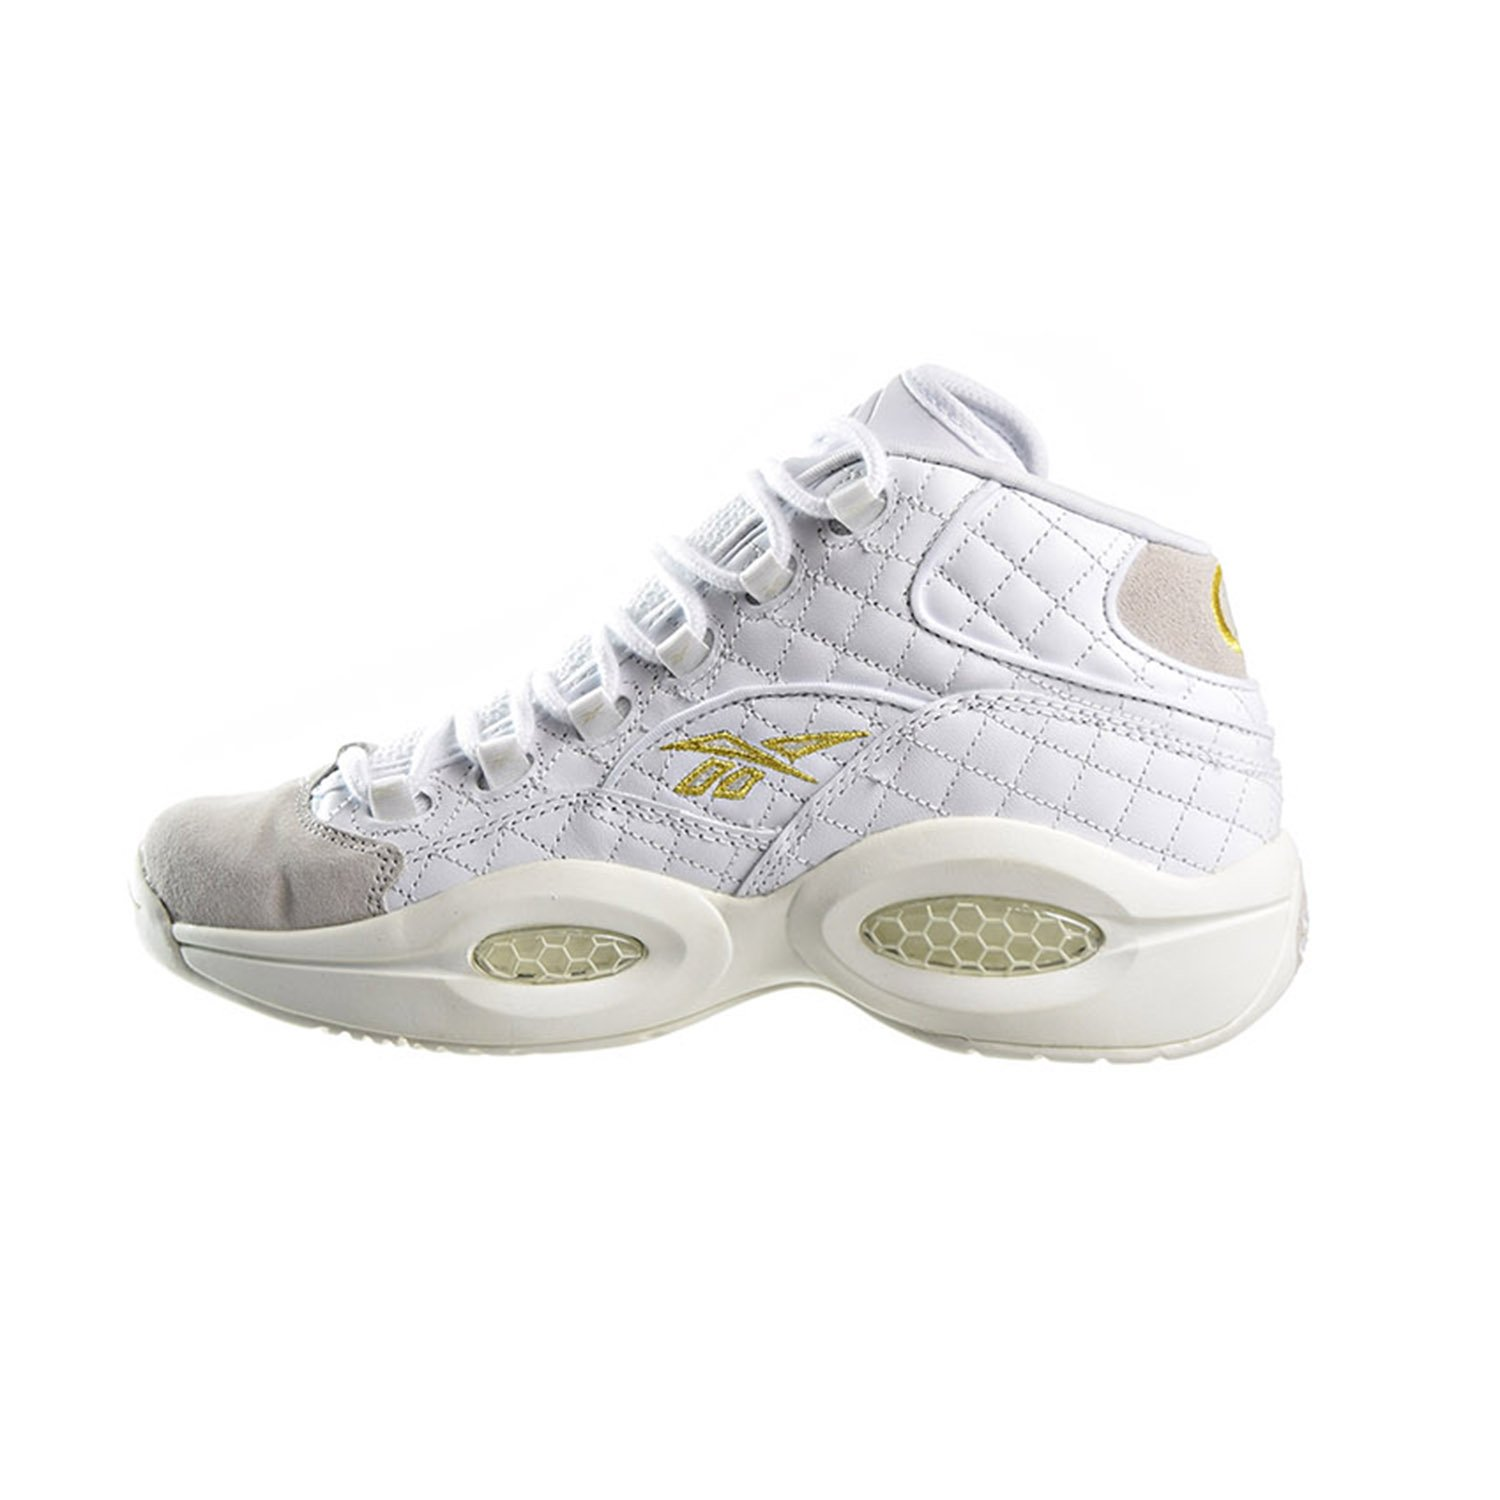 Mens Reebok Question Mid Quilted White Party Iverson White Chalk Gold /<AR1710/>